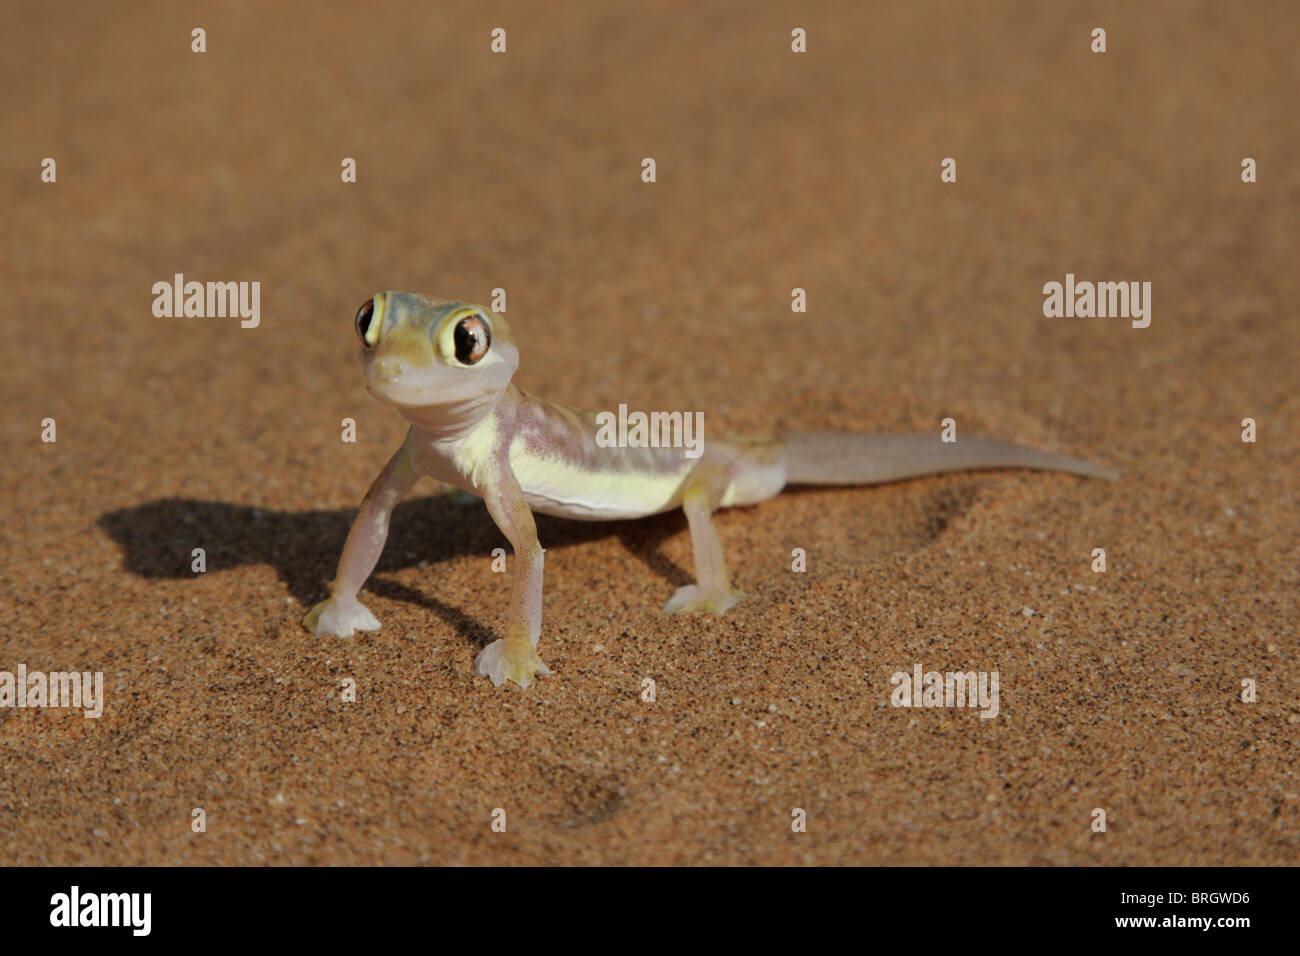 Palmatogecko (Pachydactylus rangei), also known as Web-footed Gecko, a nocturnal gecko endemic to the Namib Desert. Stock Photo